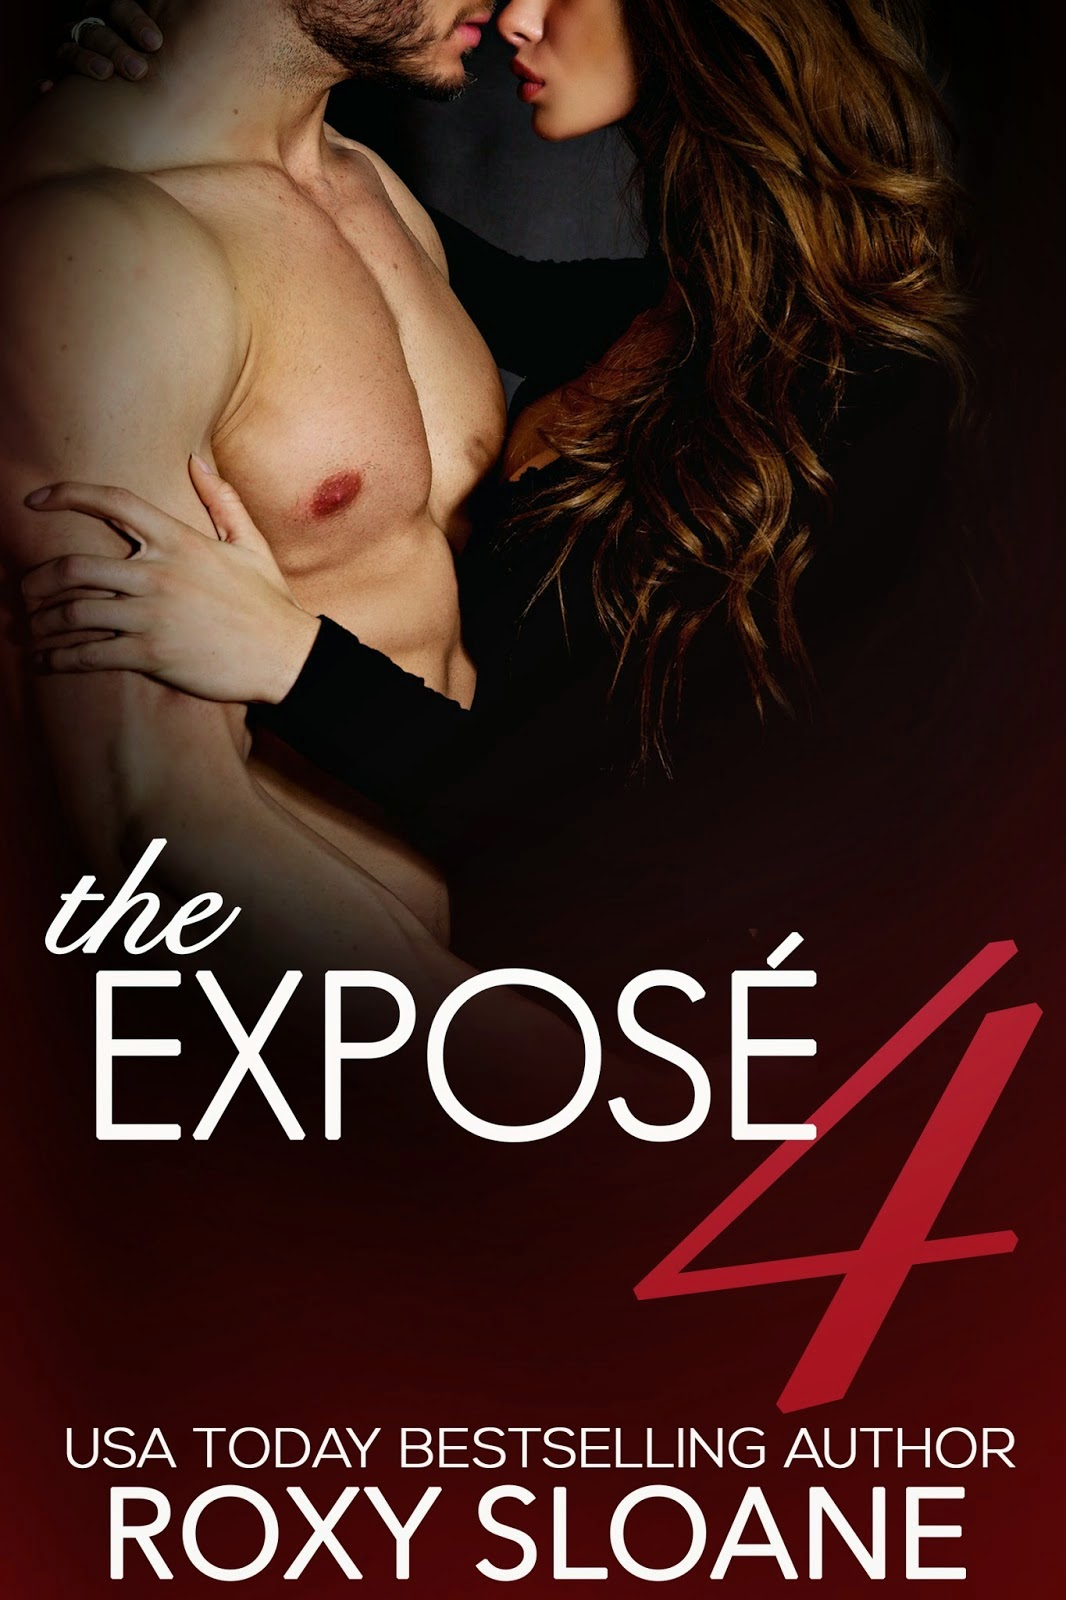 The Exposé Vol. 4